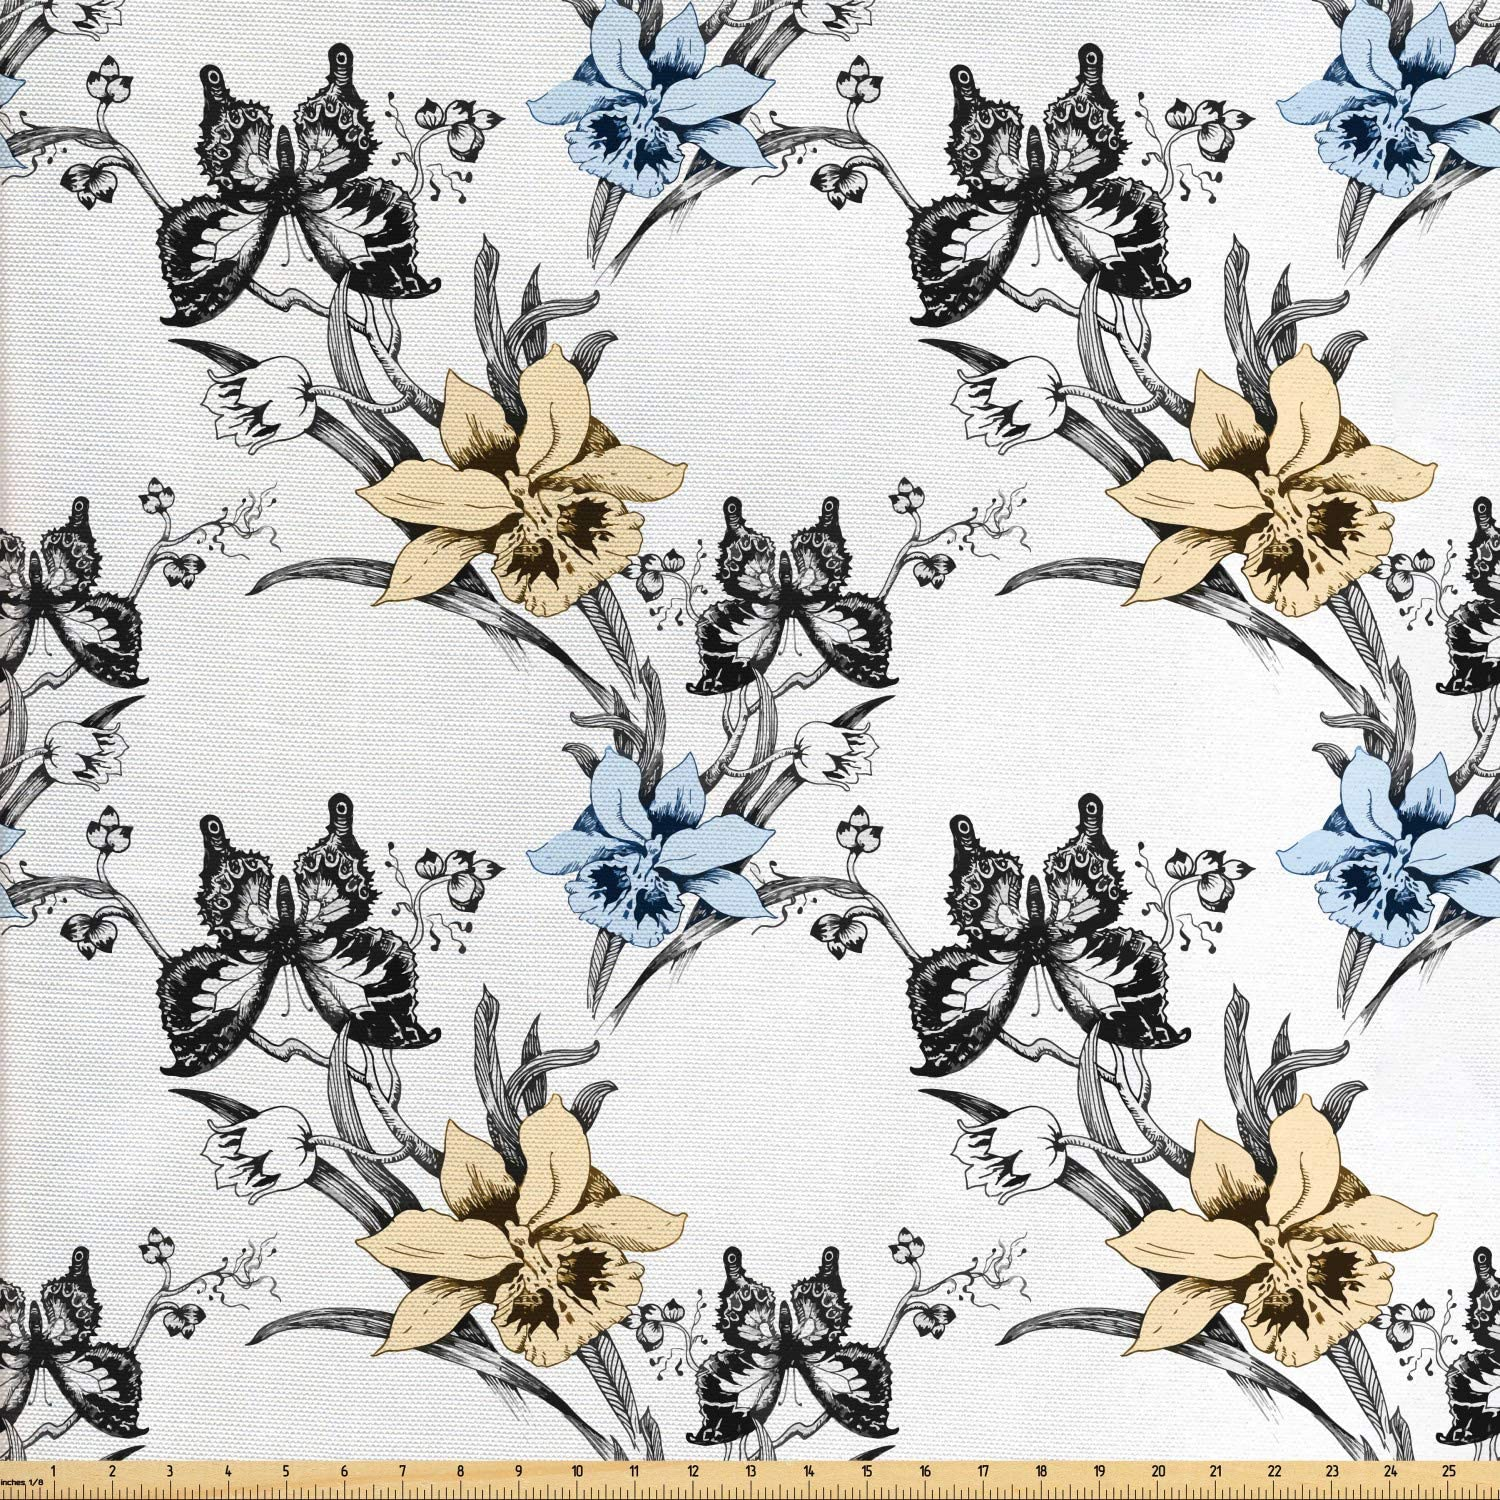 Ambesonne Vintage Fabric by The Yard, Detailed Sketchy of Snapdragon Flower and Butterflies, Decorative Fabric for Upholstery and Home Accents, 1 Yard, Multicolor